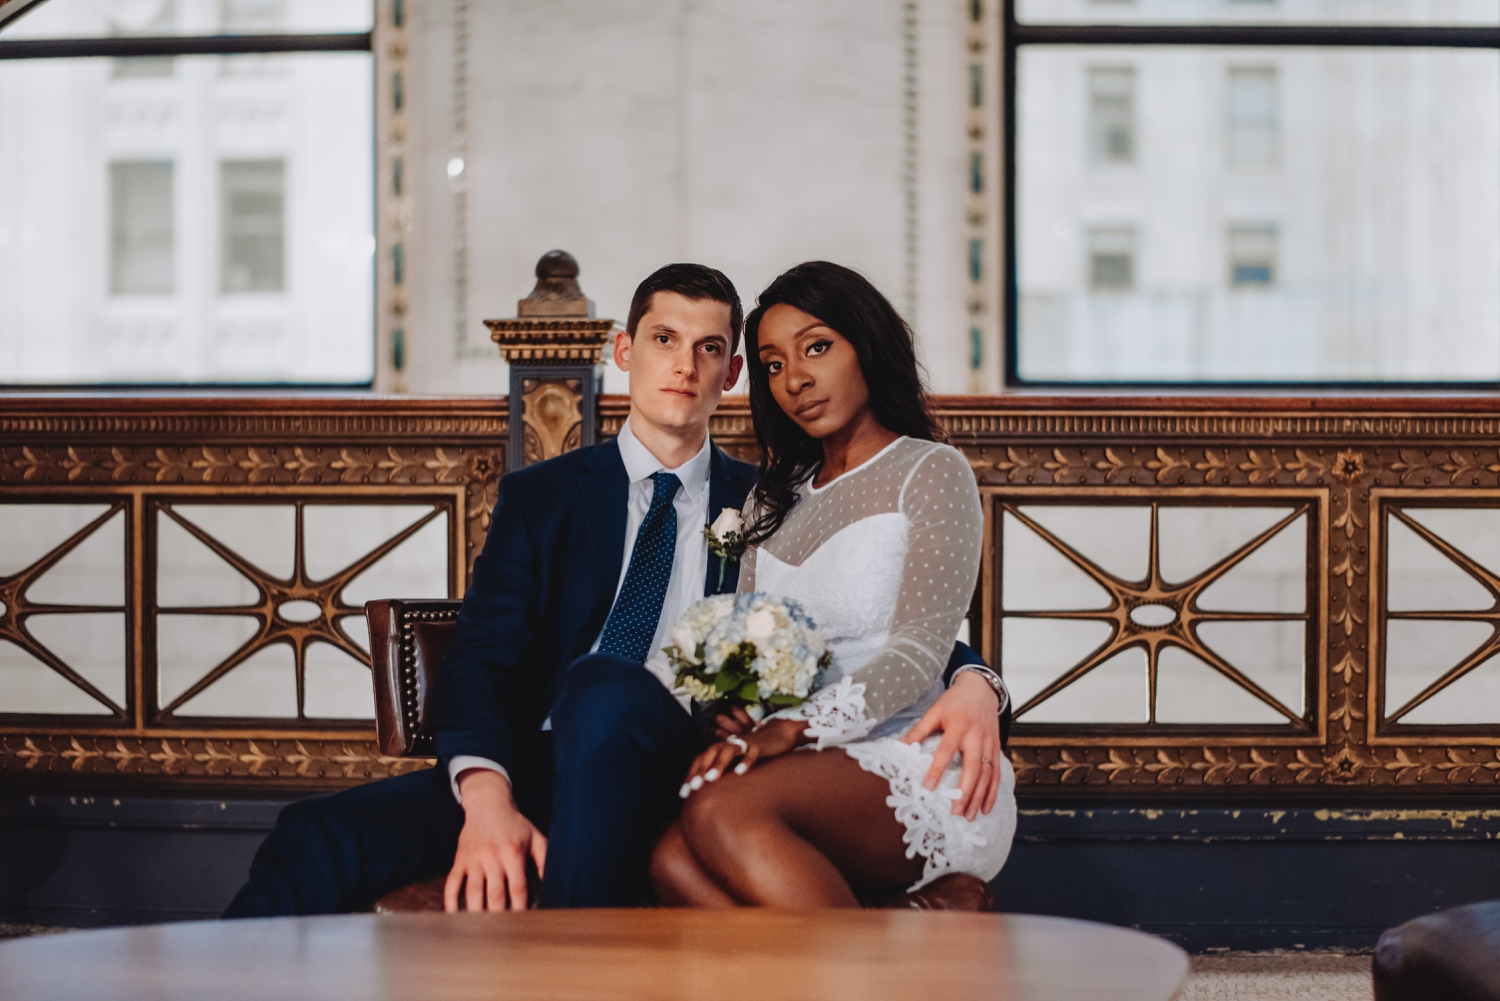 Chicago City Hall Wedding Photographer - The Adamkovi, bride and groom in the Chicago cultural center, super models,, mixed couple